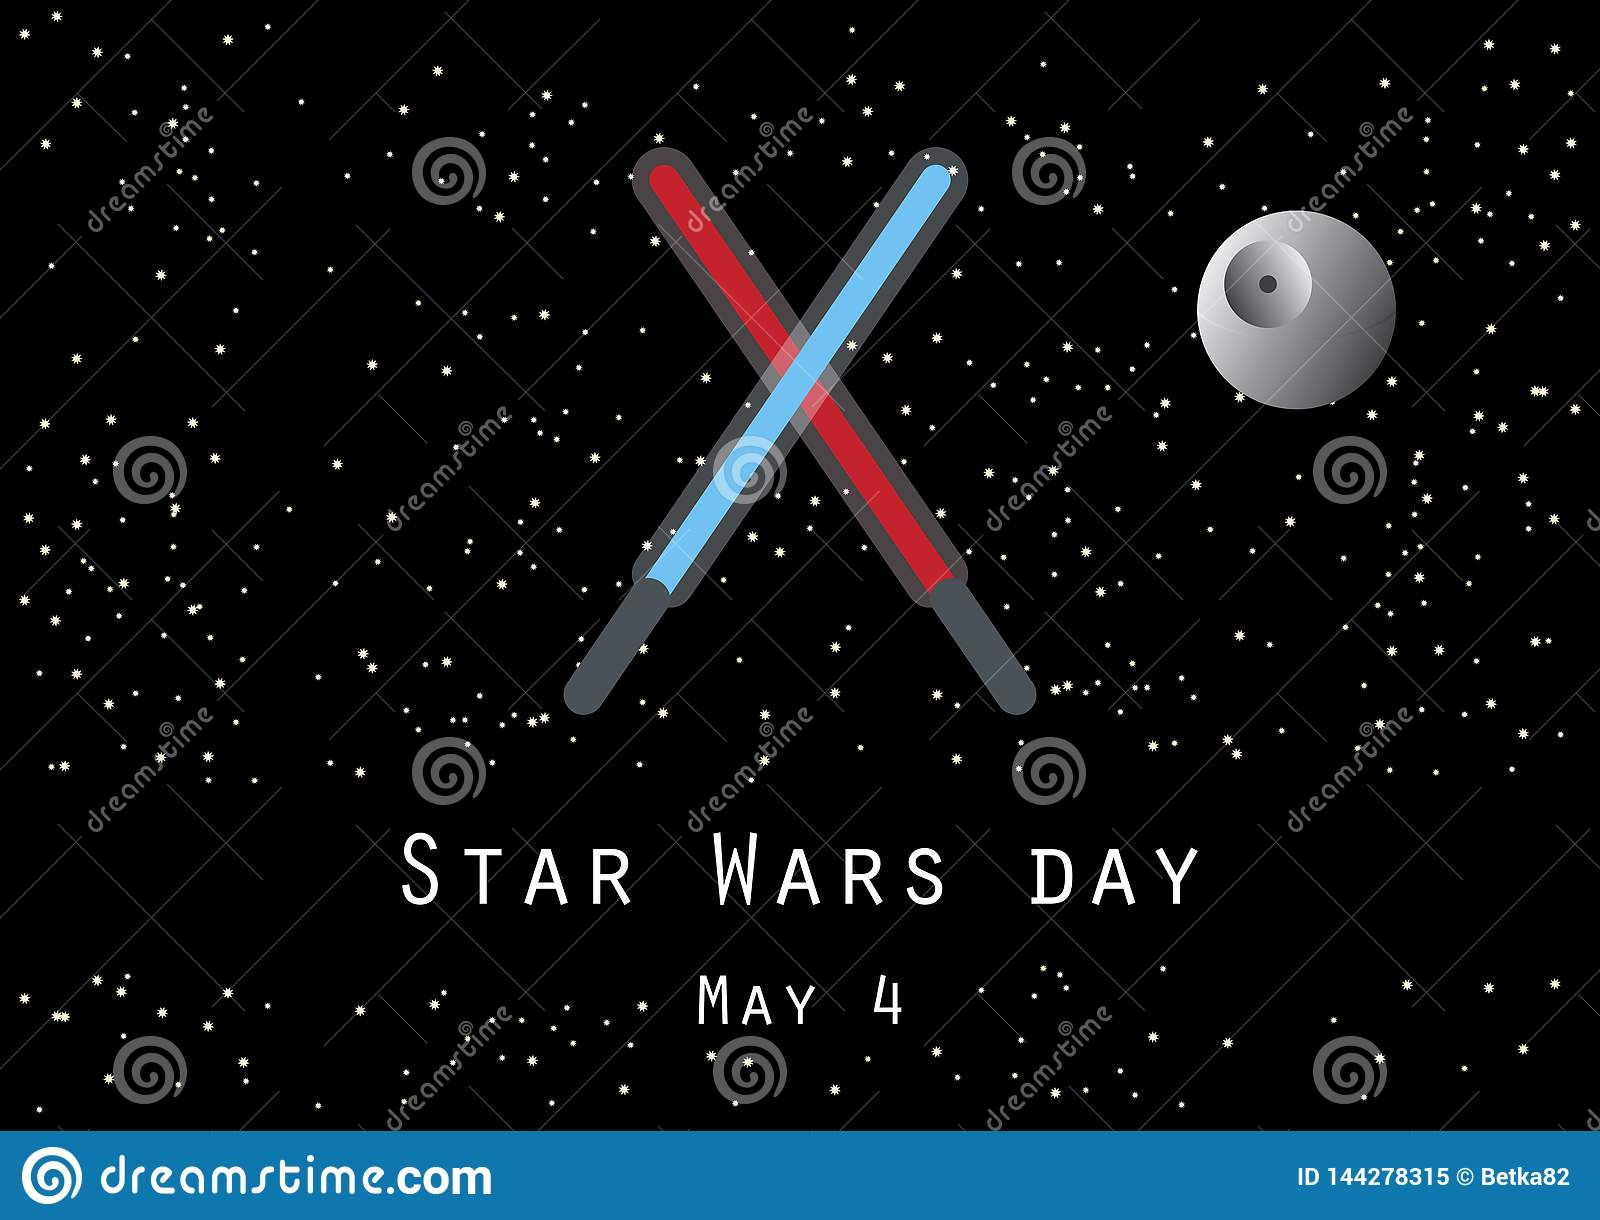 Star Wars Galaxy Stock Illustrations 1 419 Star Wars Galaxy Stock Illustrations Vectors Clipart Dreamstime